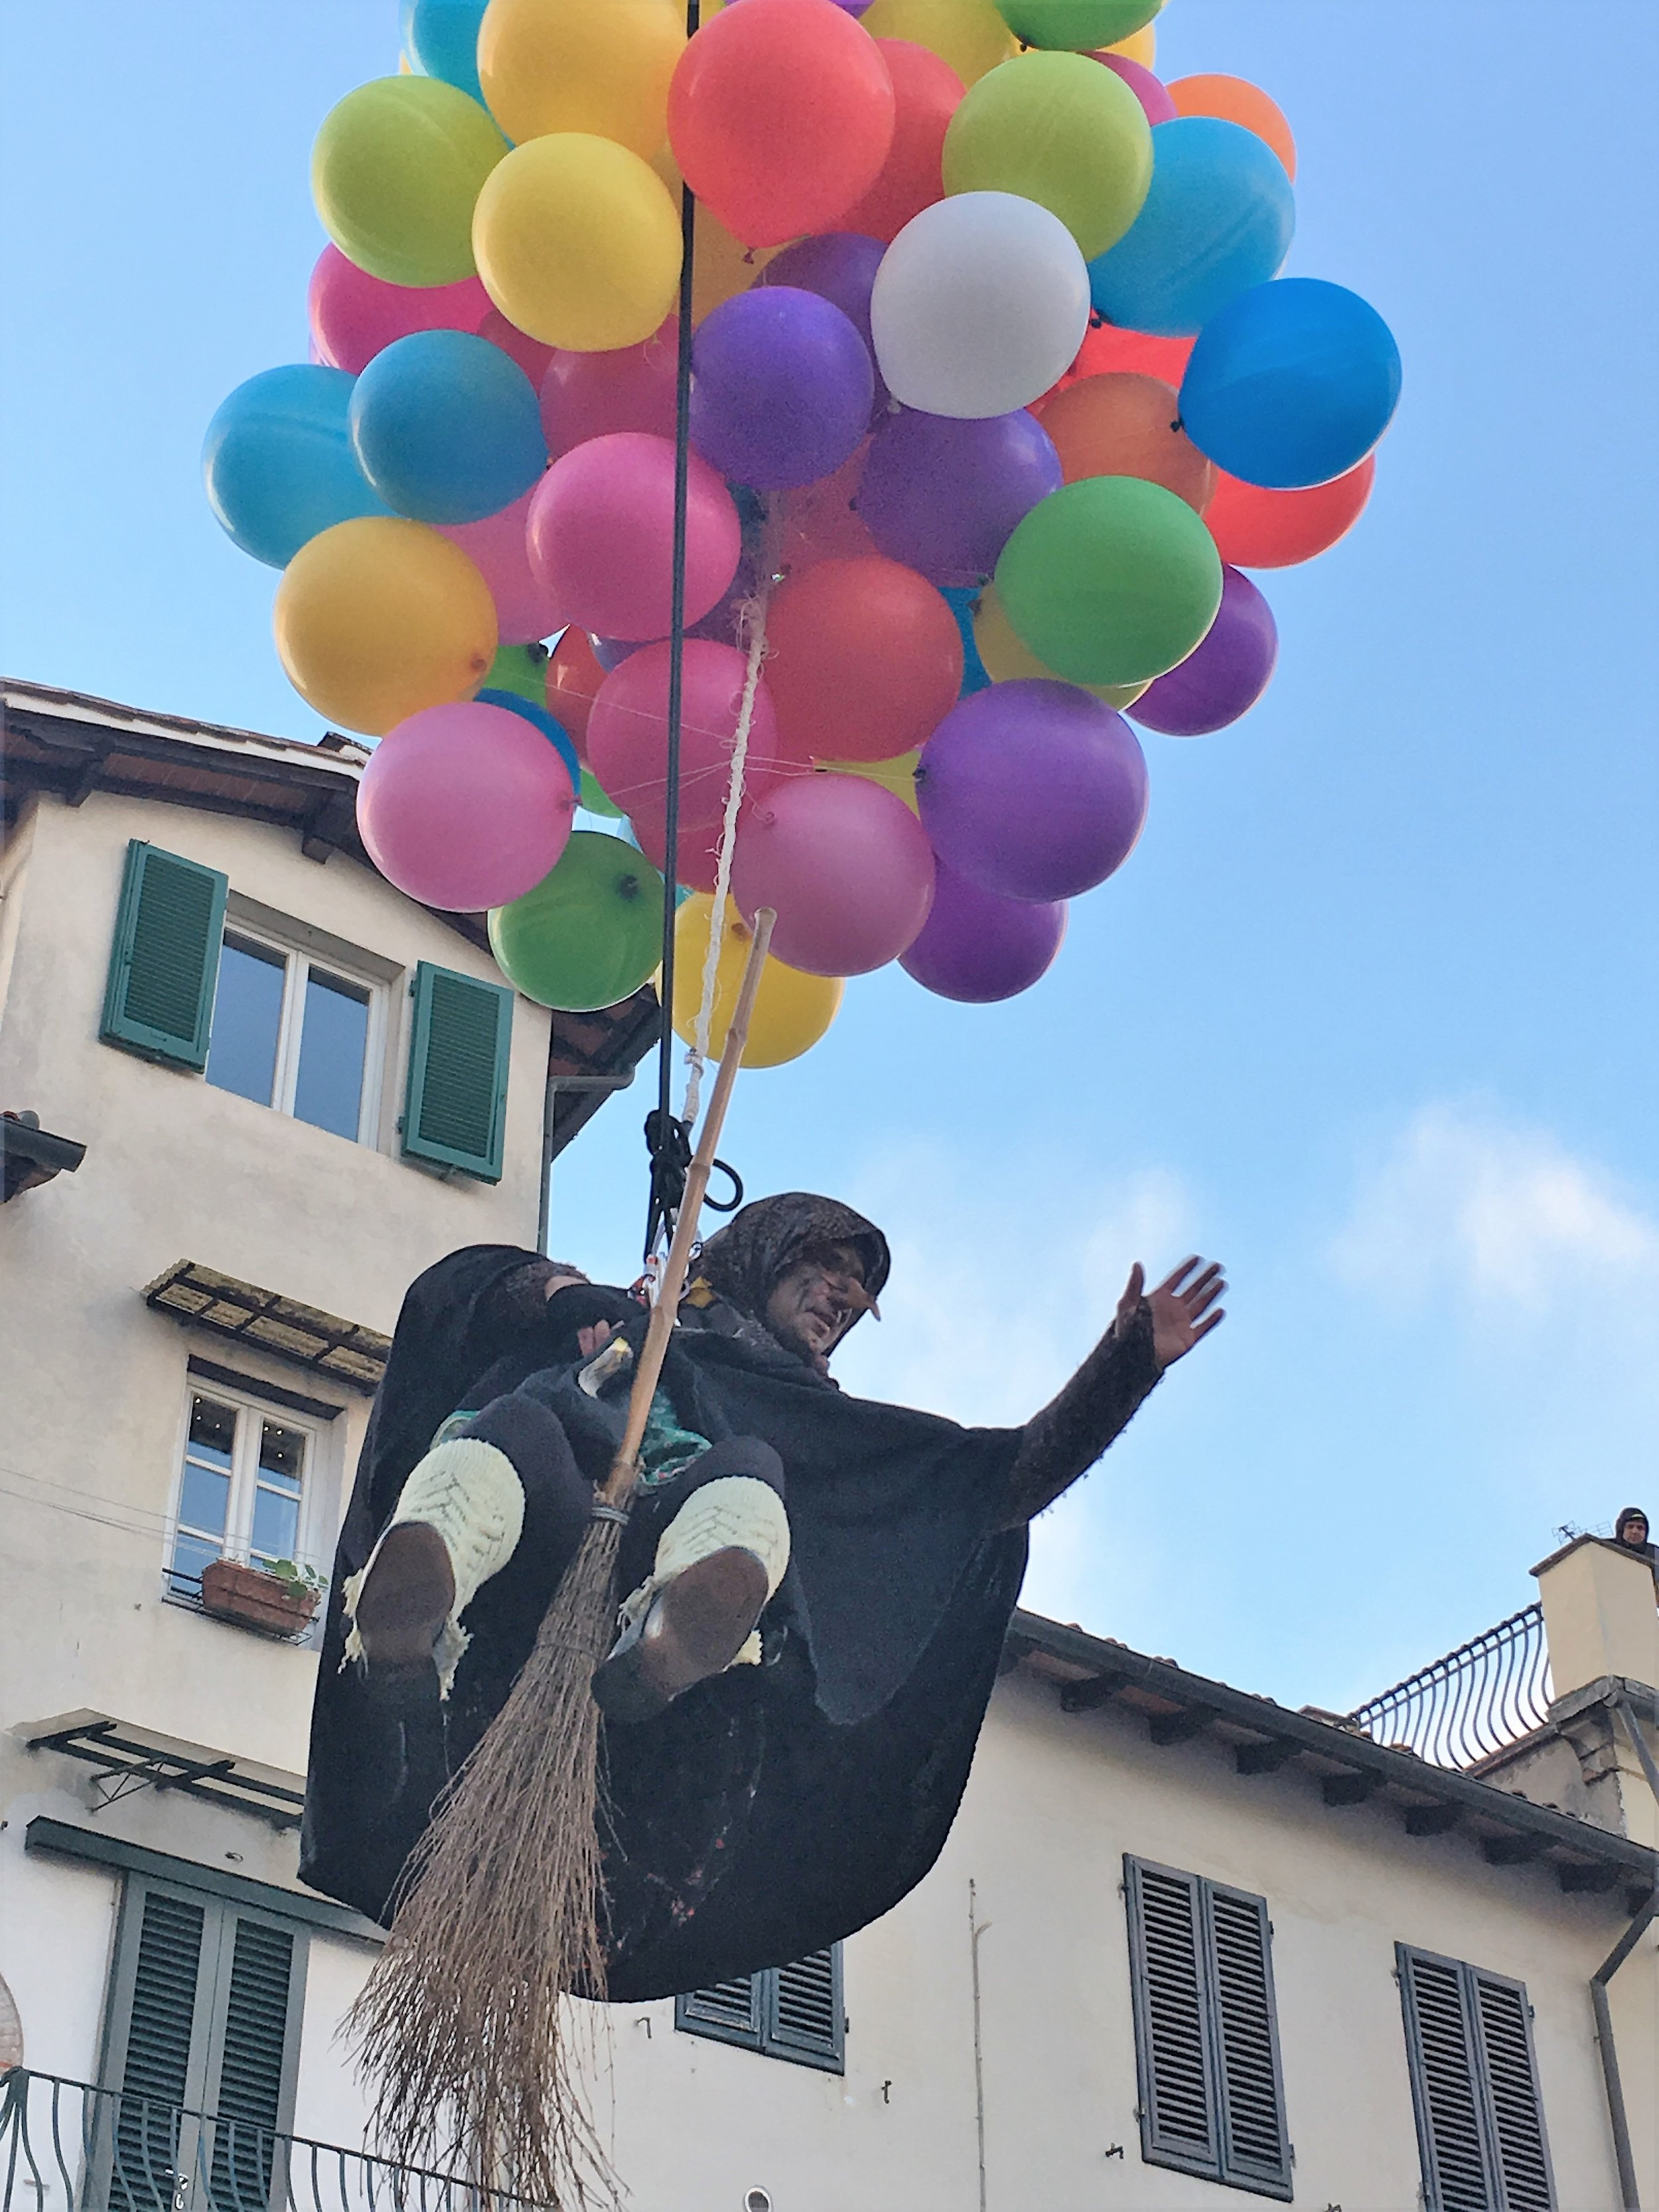 Befana waves to the crowd as she descends on Lucca, January 2017.